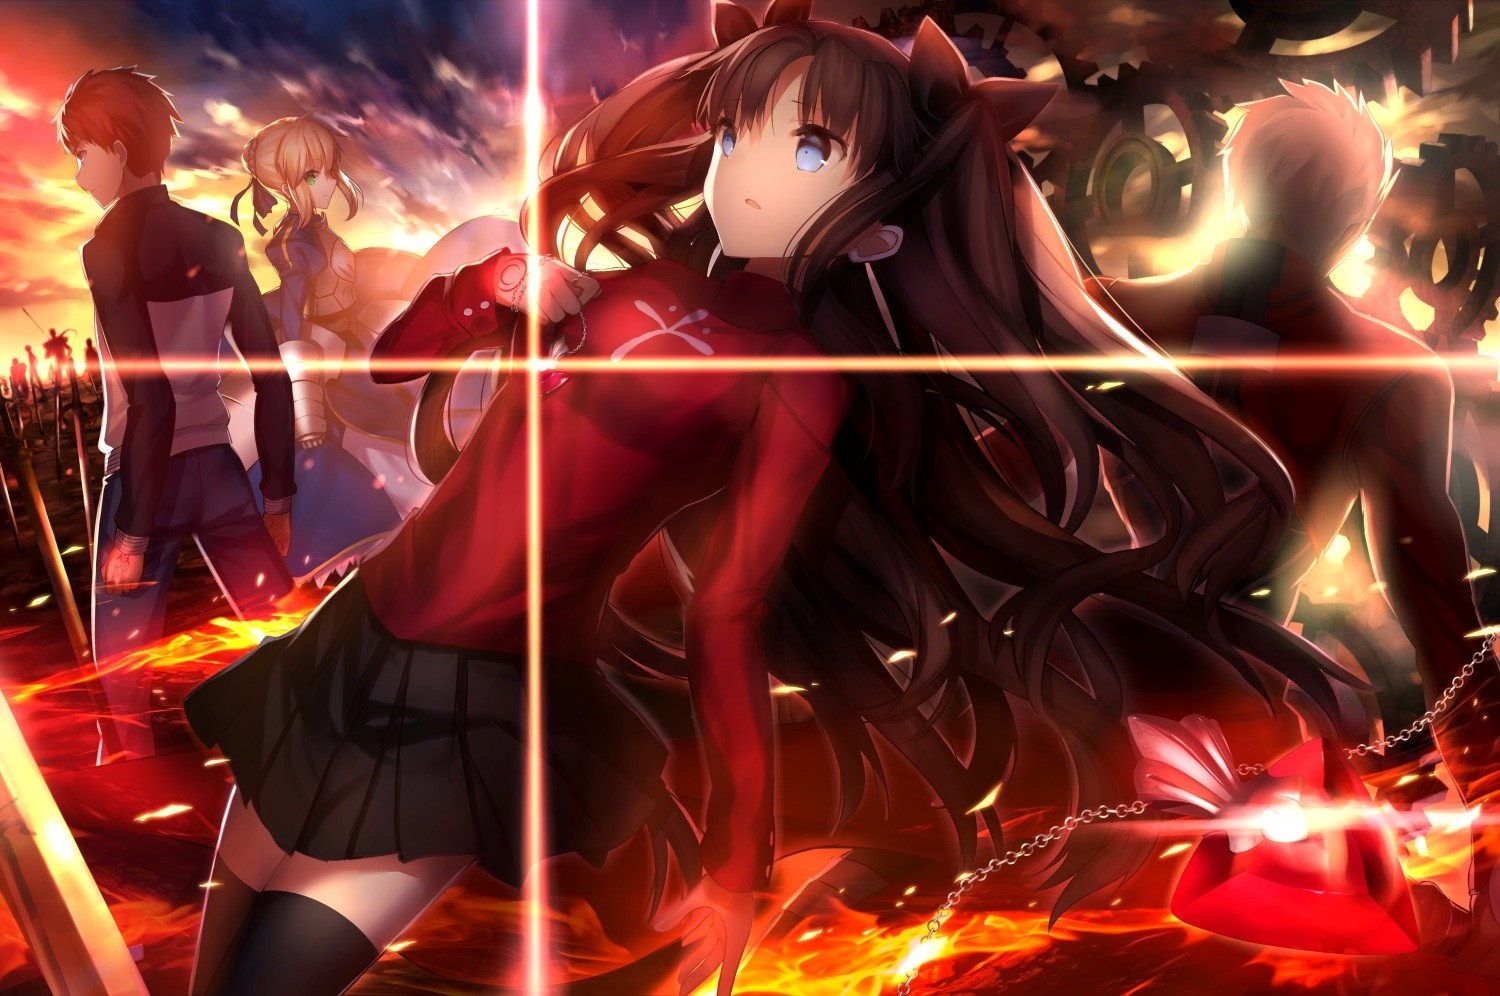 Fate Series FateStay Night Tohsaka Rin Saber Shirou Emiya Anime